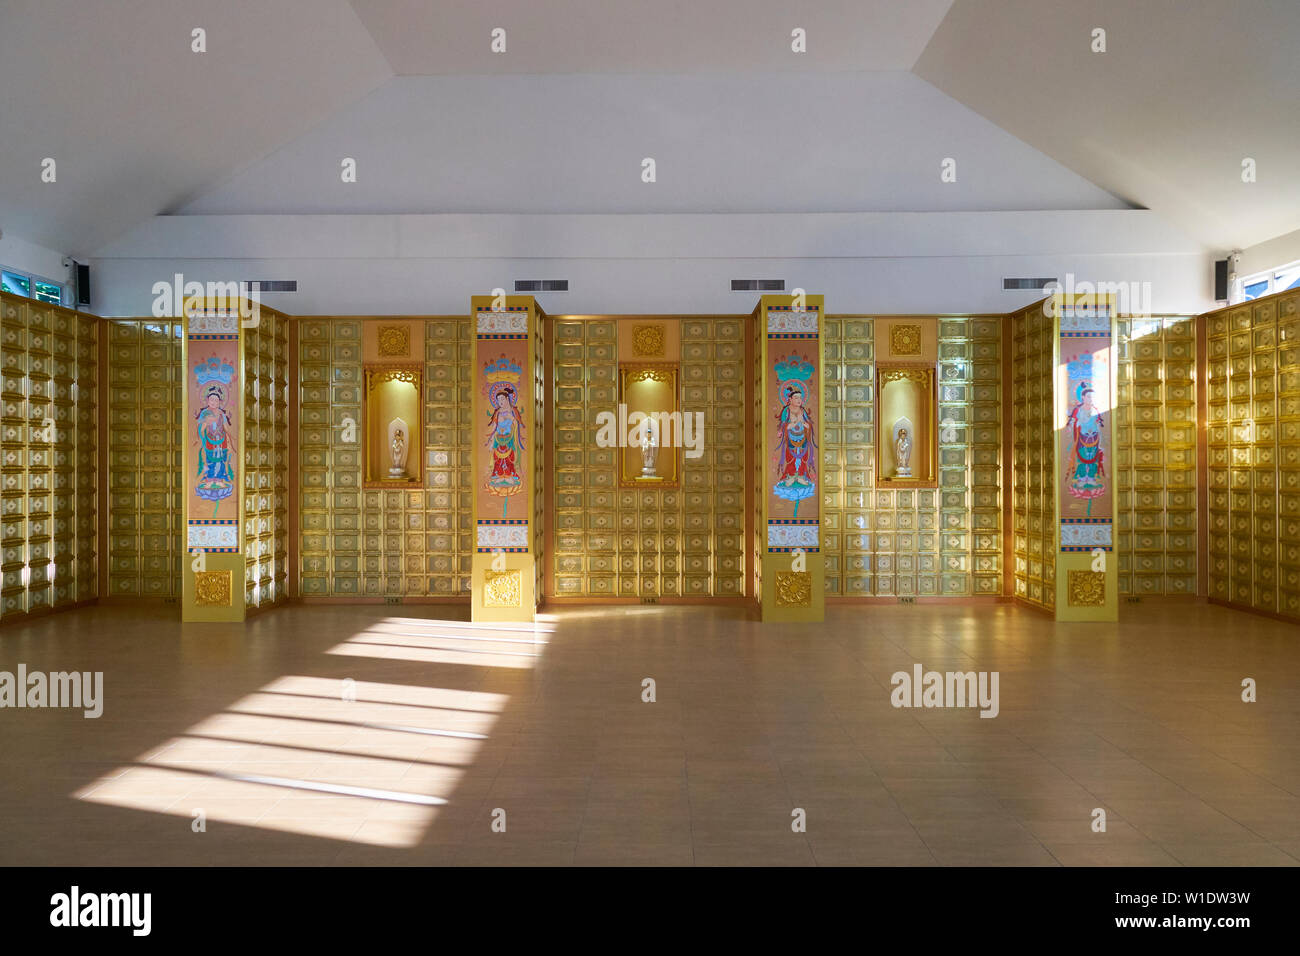 Inside the Memorial Shrine building at the Che Sui Khor Chinese temple in Kota Kinabalu, Borneo, Malaysia. - Stock Image